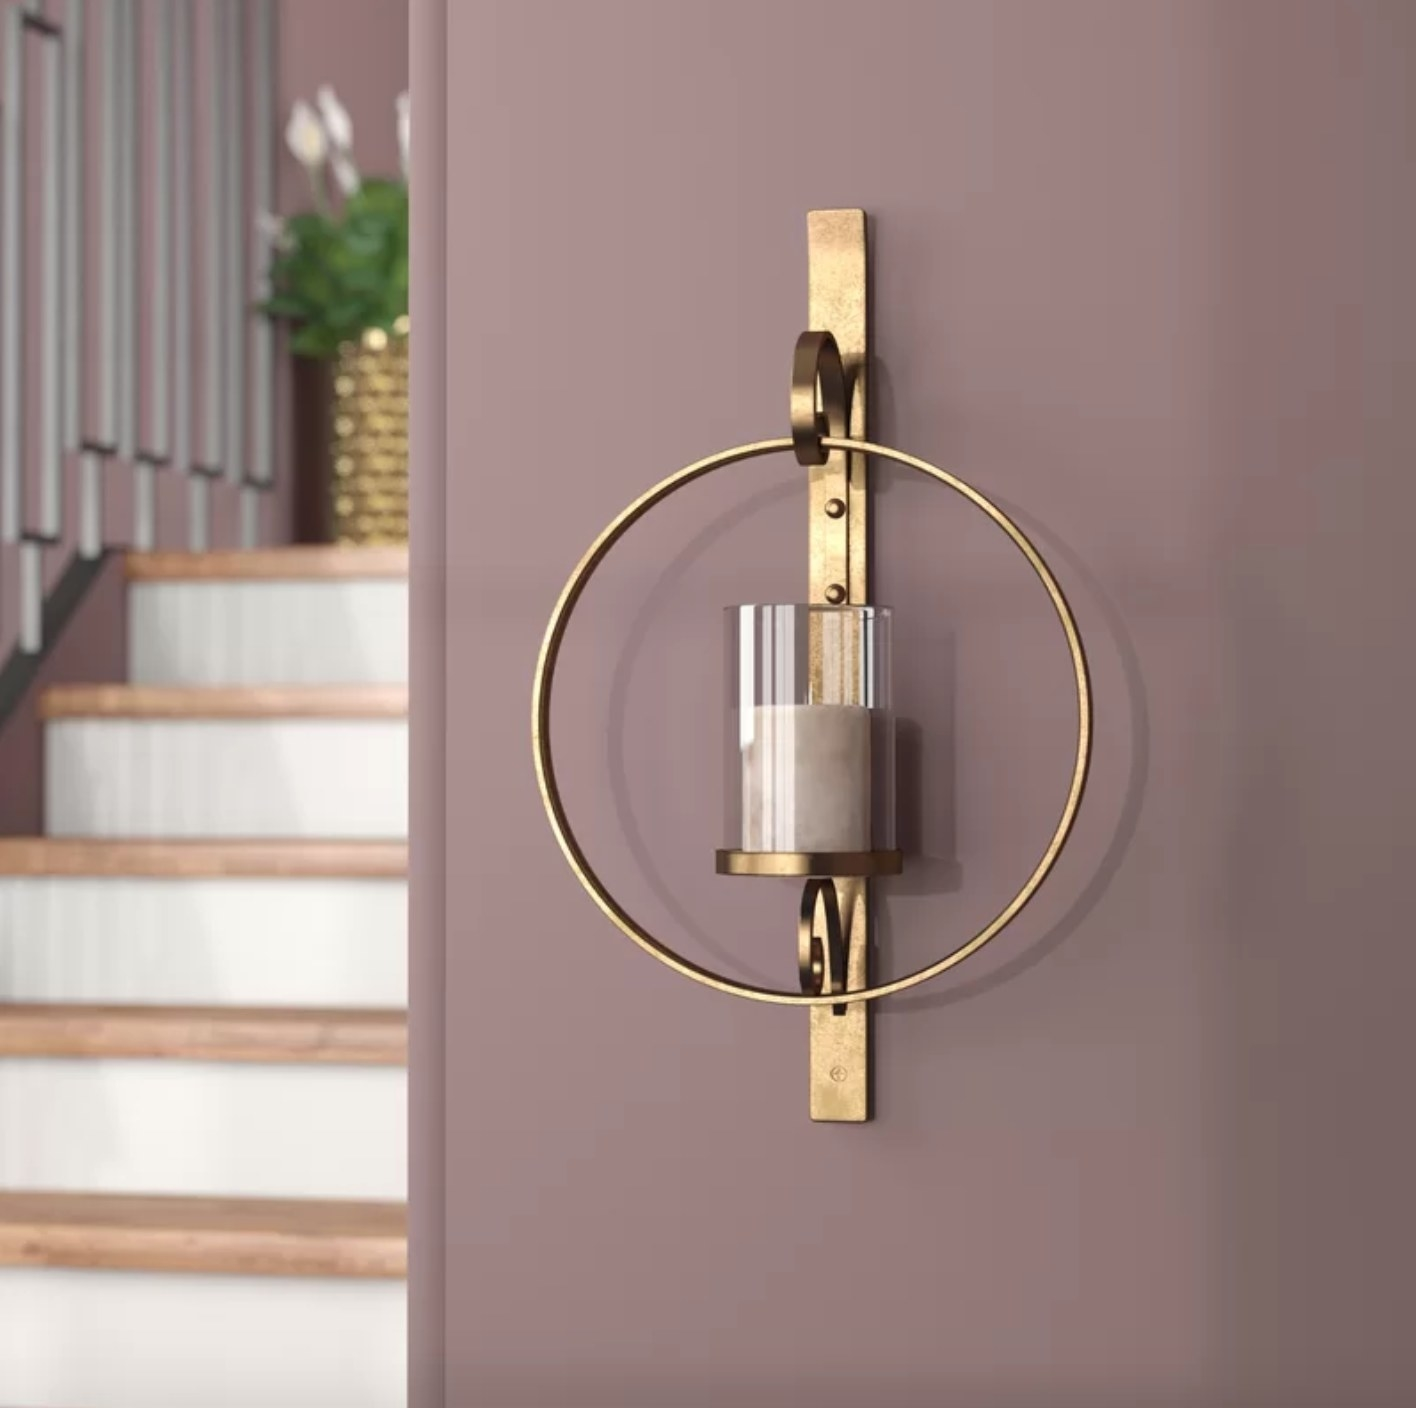 The wall sconce in gold